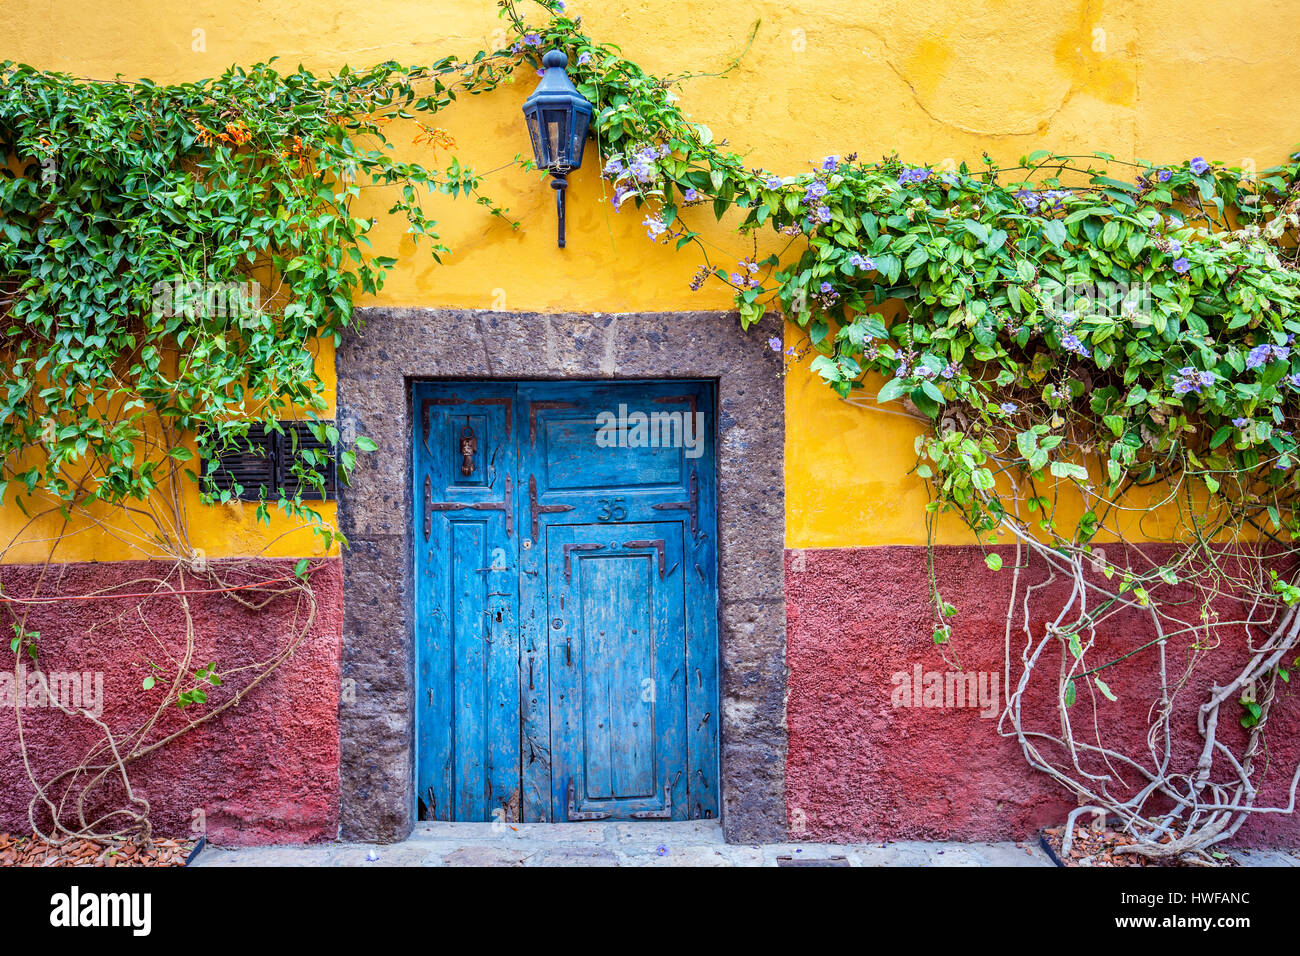 A colorful house adorns one of the back streets in colonial San Miguel de Allende, Mexico. - Stock Image